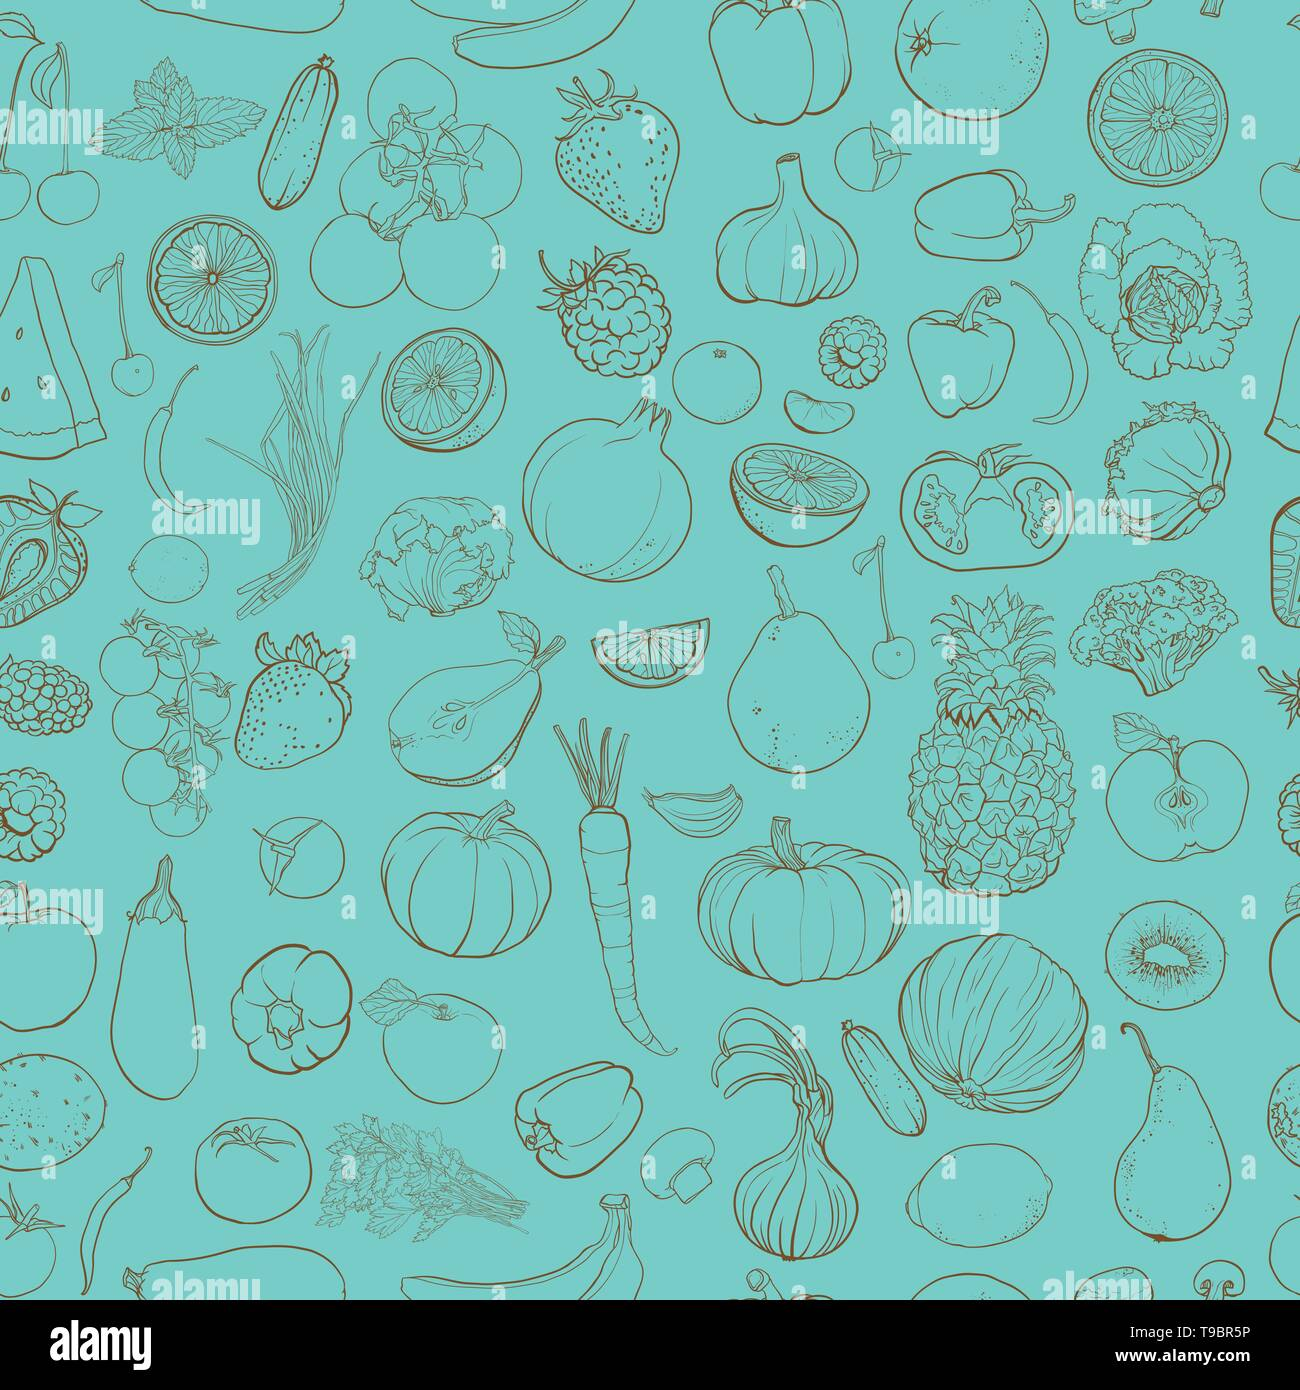 Seamless vector pattern with contour drawing of vegetables, fruit, berries. Background with food ingredients. eps 10 - Stock Vector